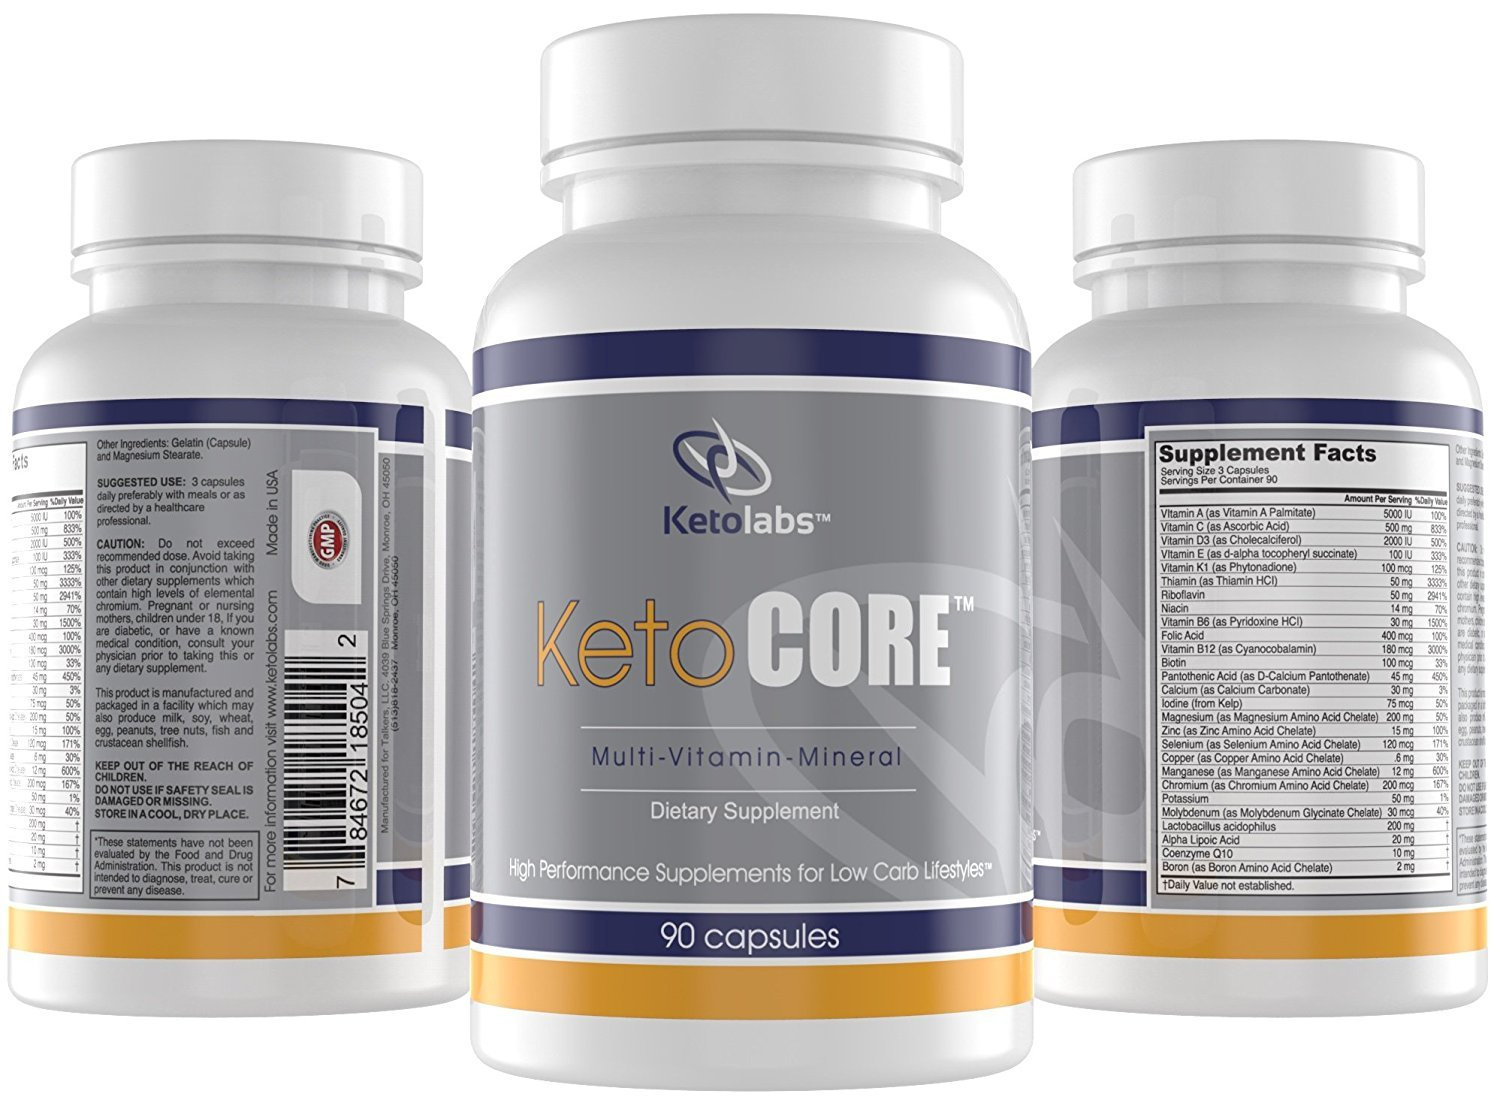 Ketolabs Keto Core Daily Multivitamin with Electrolytes, Minerals, Probiotics - Zero Carb Health Supplement for Ketogenic, Intermittent Fasting, and Other Low Carb Diets Diets by Ketolabs